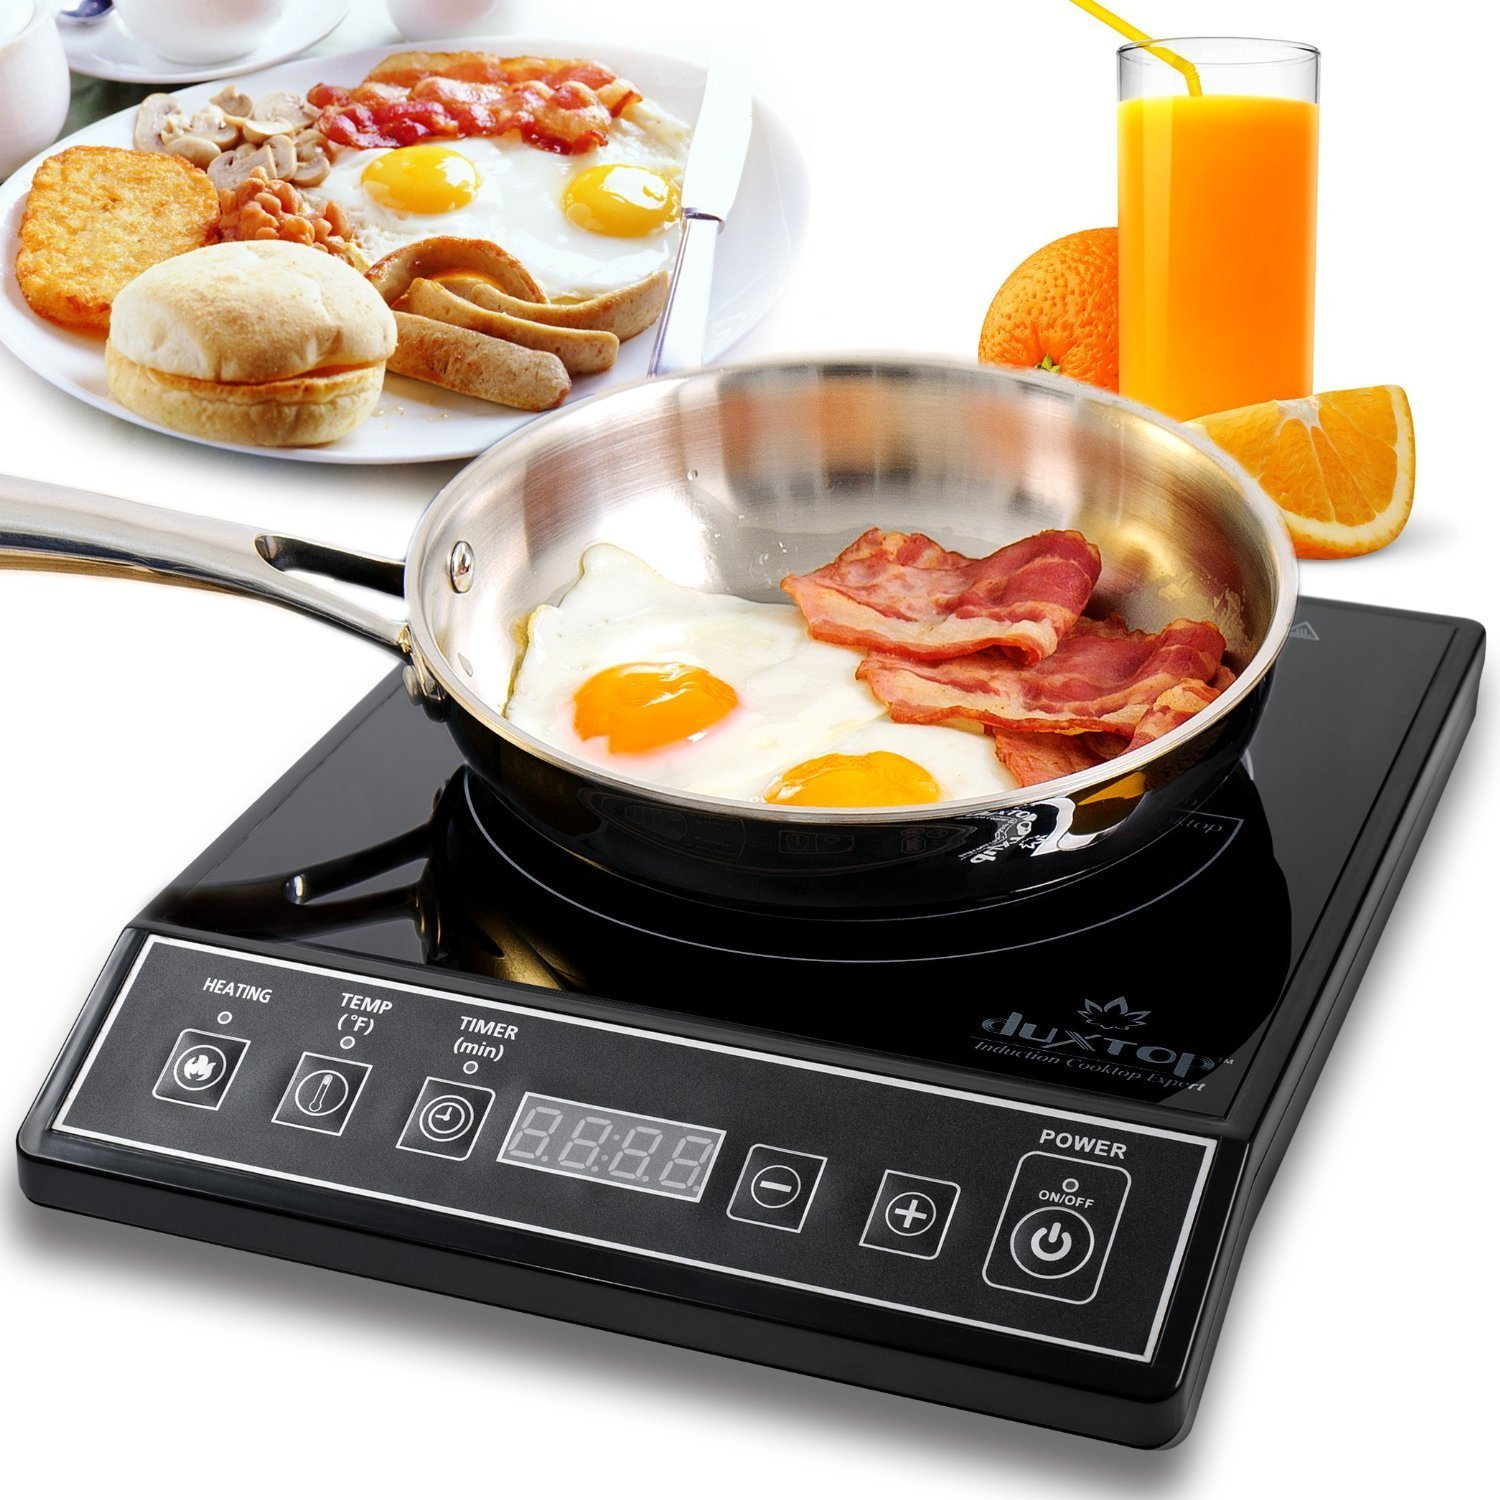 Secura 9100MC 1800W Induction Cooktop Review